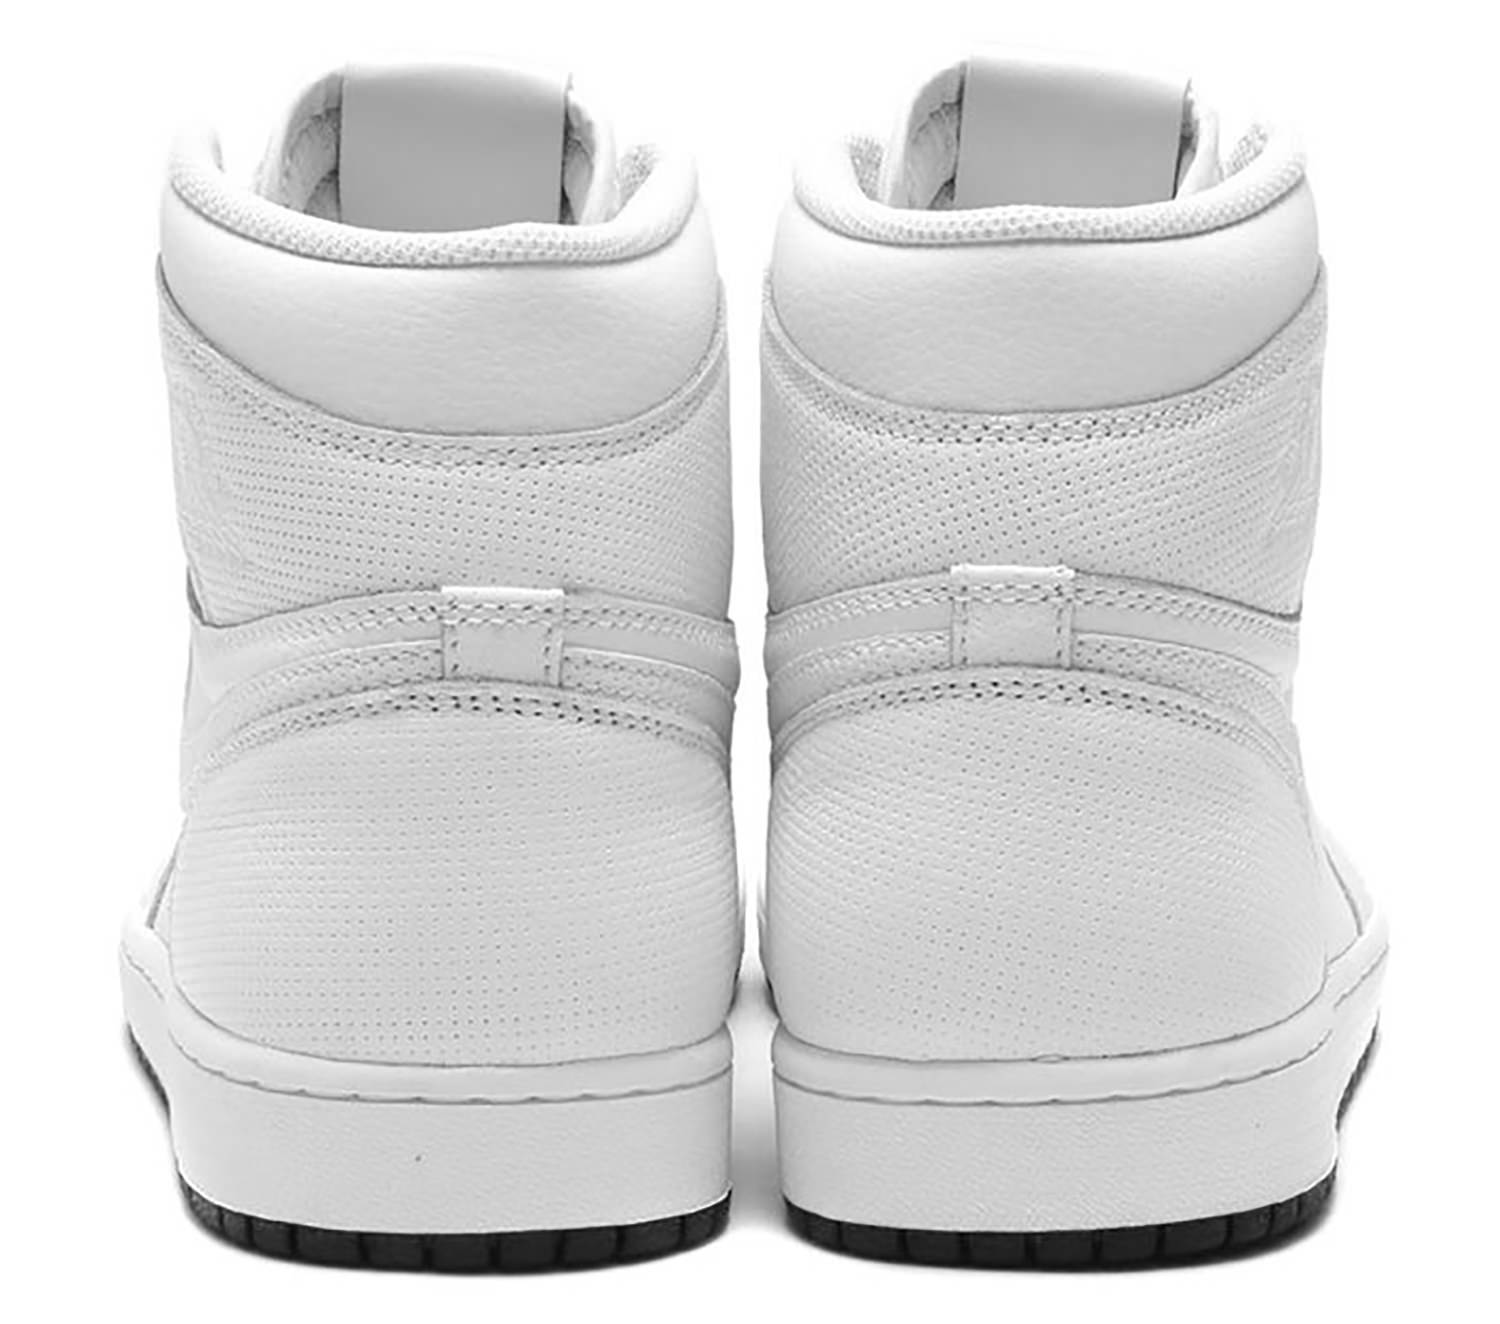 air-jordan-1-high-perforated-pack-5